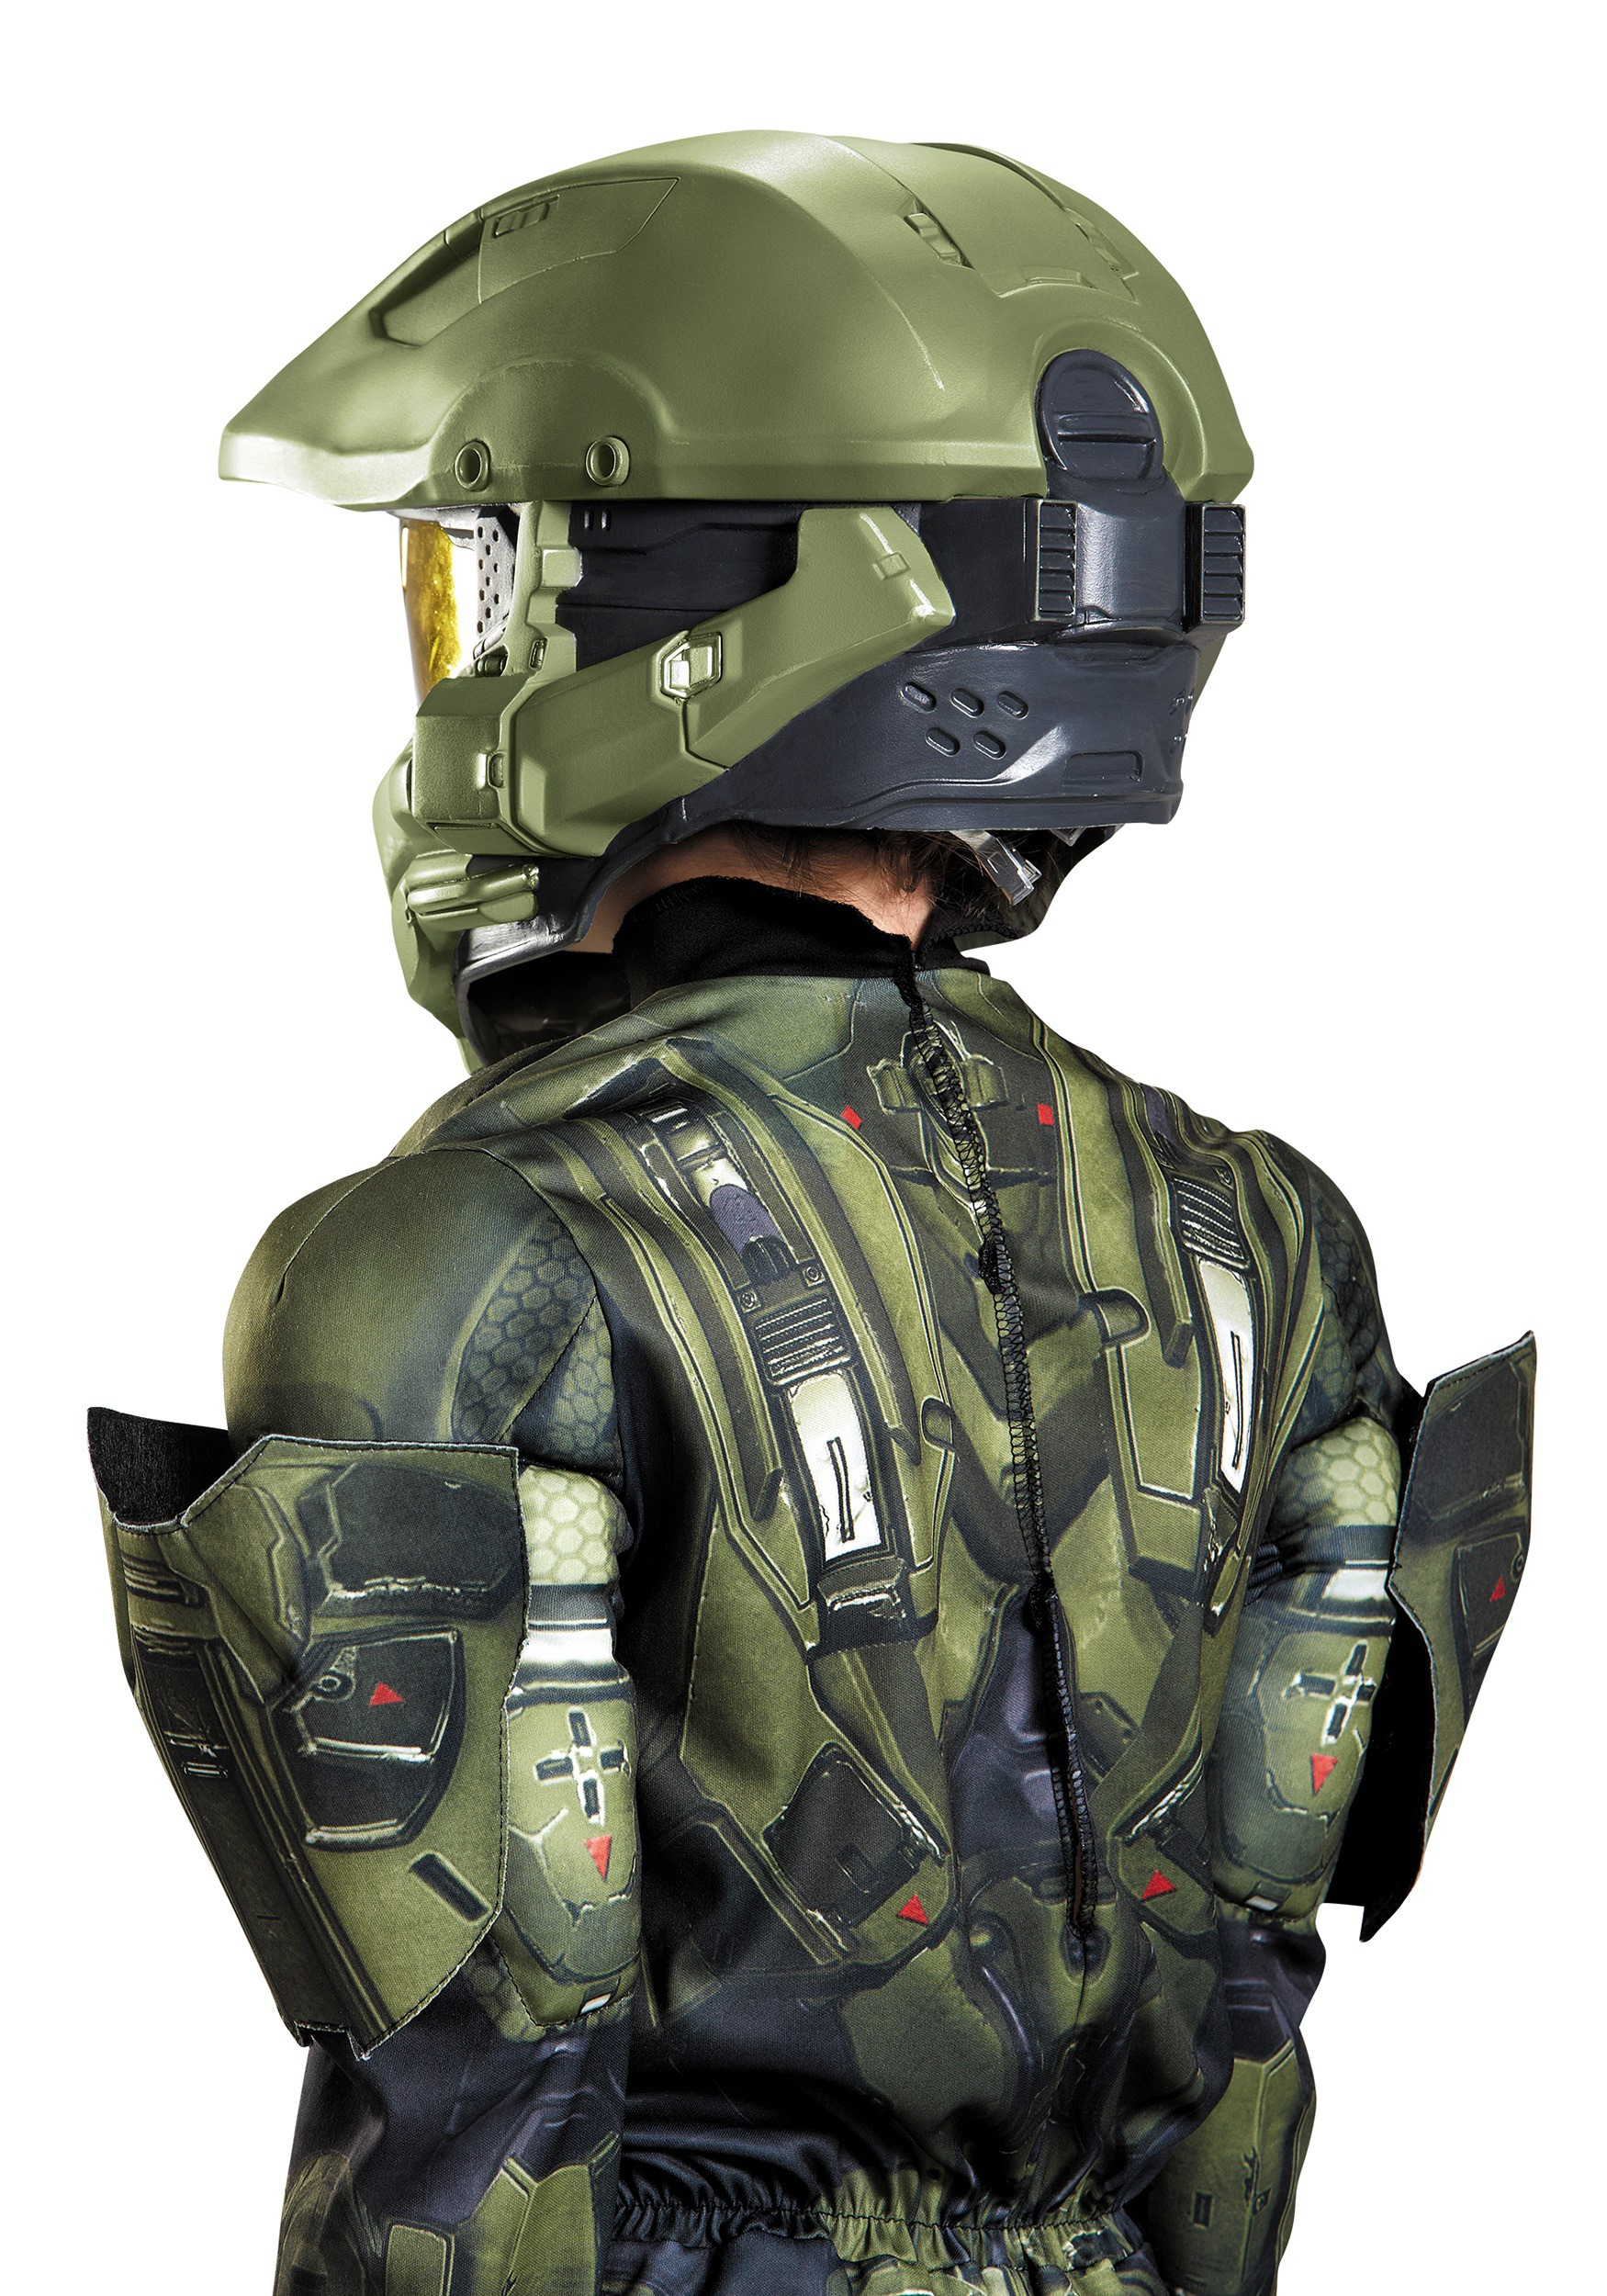 ... halo spartan armor homemade costume · master chief child full helmet ...  sc 1 st  Best Kids Costumes & Halo Spartan Costume Kids - Best Kids Costumes